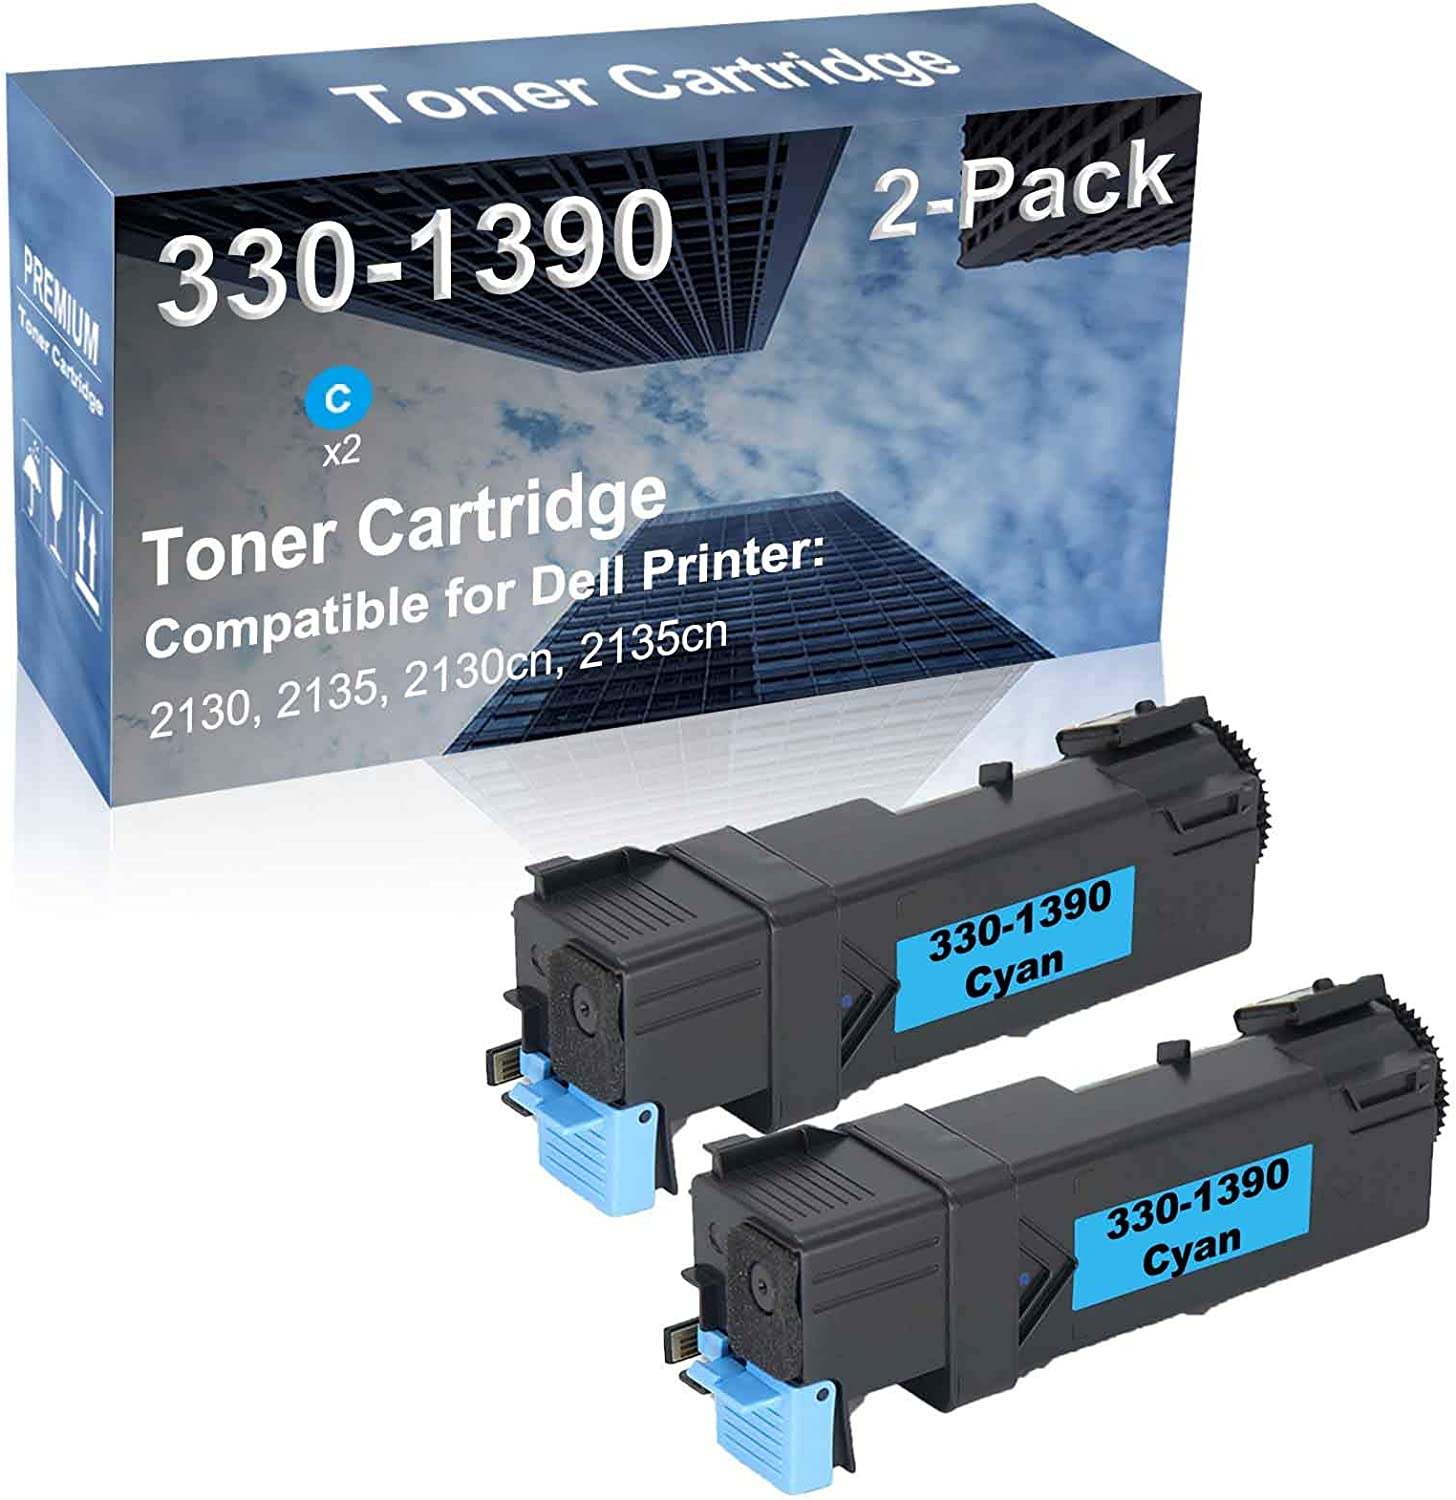 2-Pack (Cyan) Compatible High Capacity 330-1390 Toner Cartridge Used for Dell 2130, 2135, 2130cn, 2135cn Printer